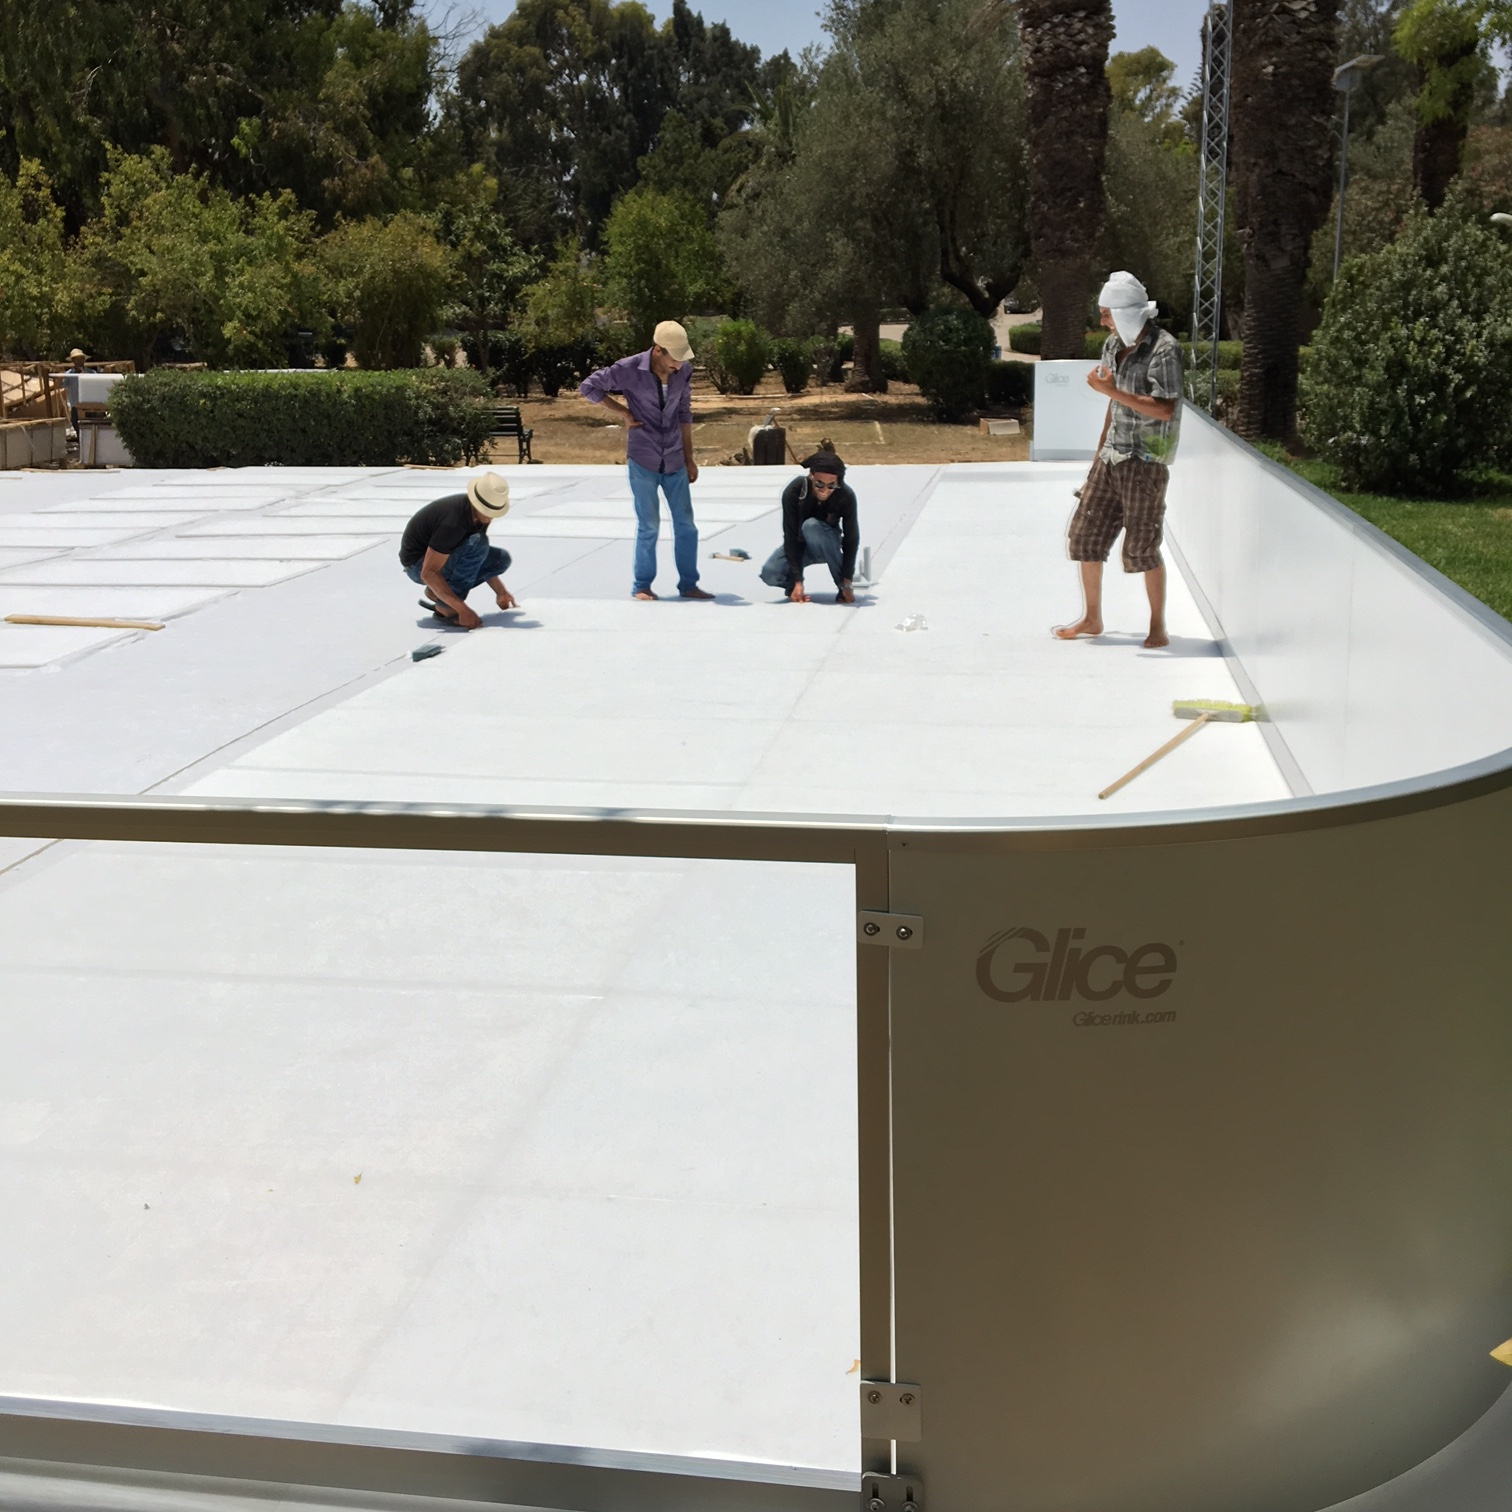 Glice® synthetic ice rink in Tunisia!